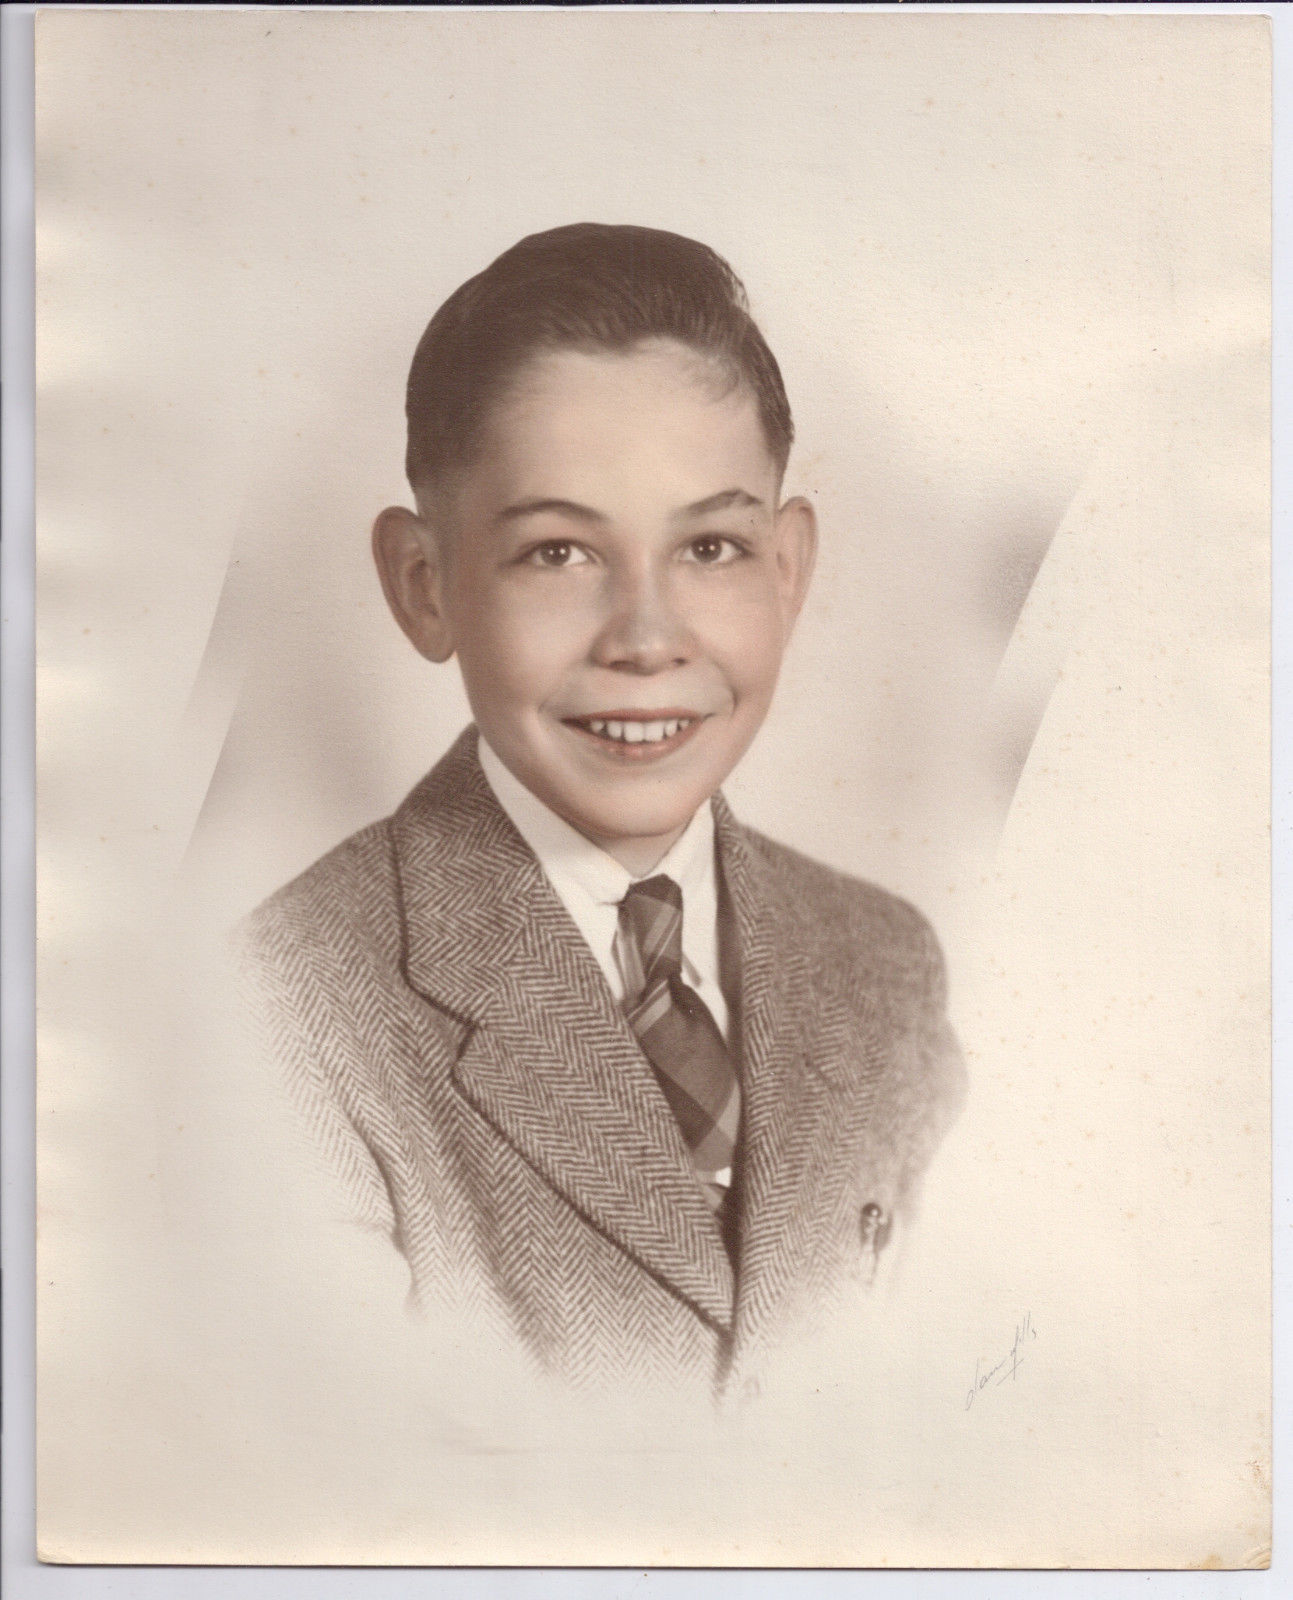 Springfield Ohio Olan Mills Vintage Tinted Portrait of  Young boy Suit  8 X 10